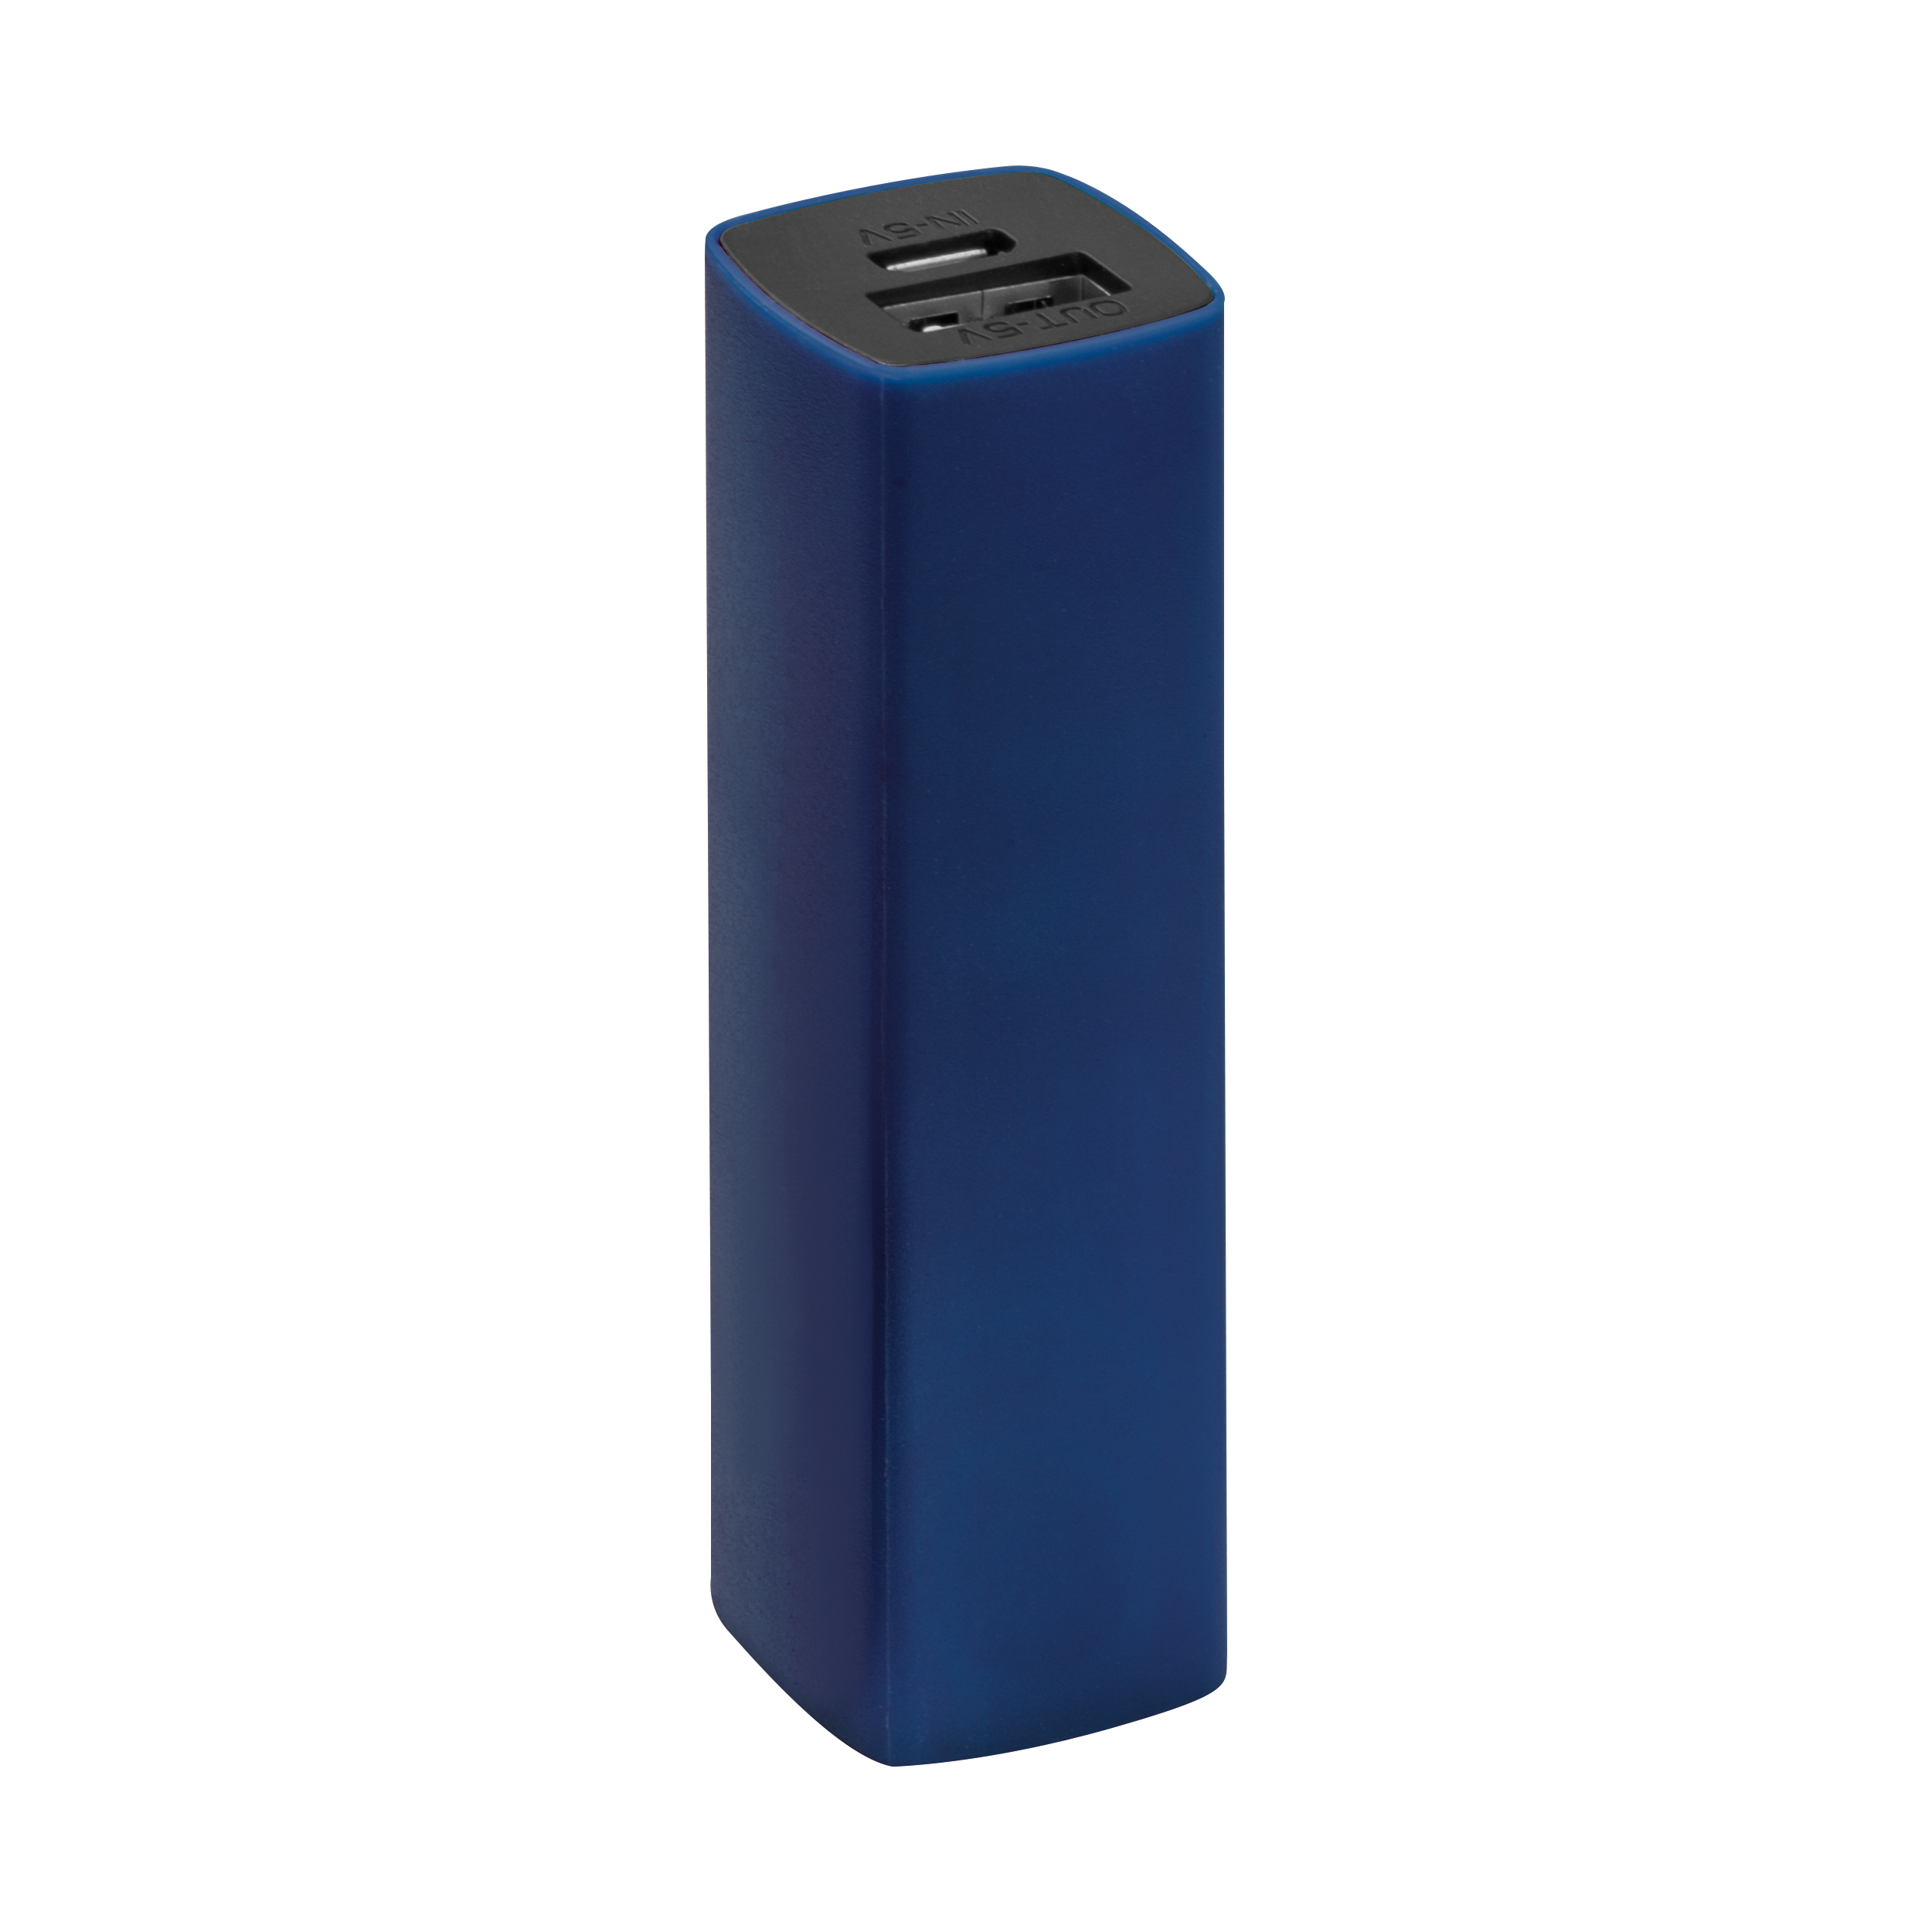 Powerbank 2200 mAh with USB port in a box